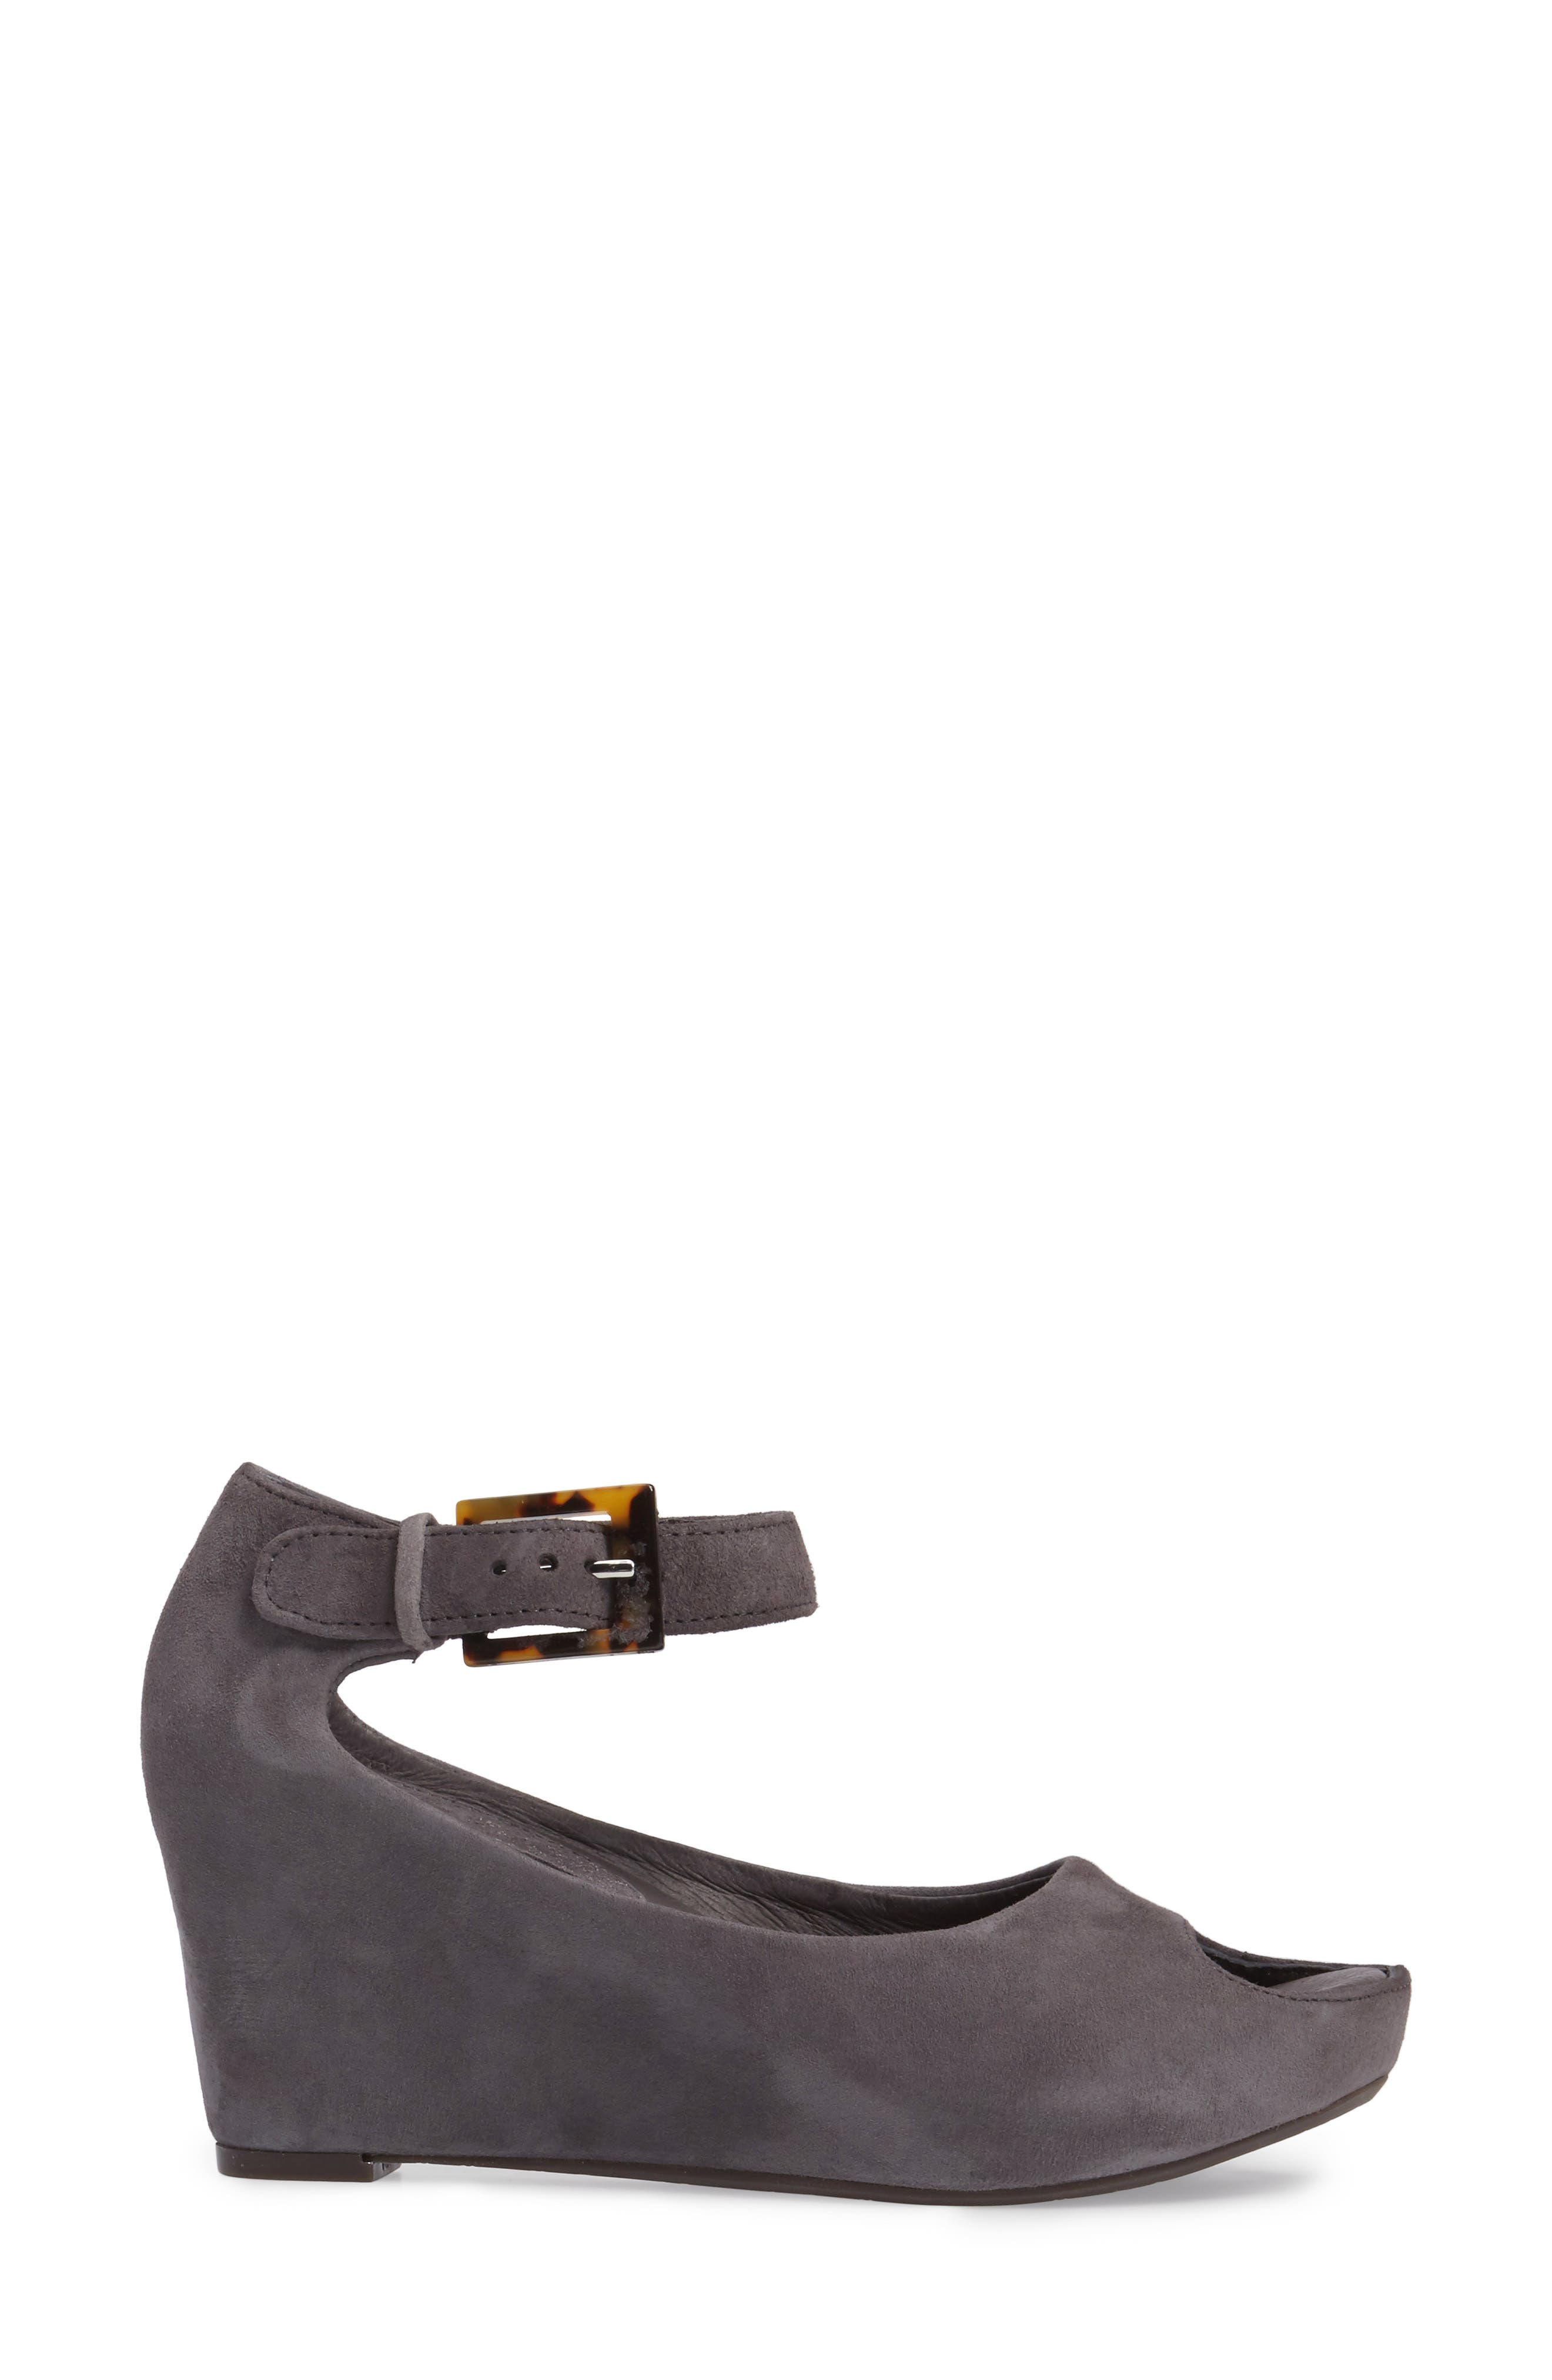 'Tricia' Ankle Strap Sandal,                             Alternate thumbnail 3, color,                             Gray Suede